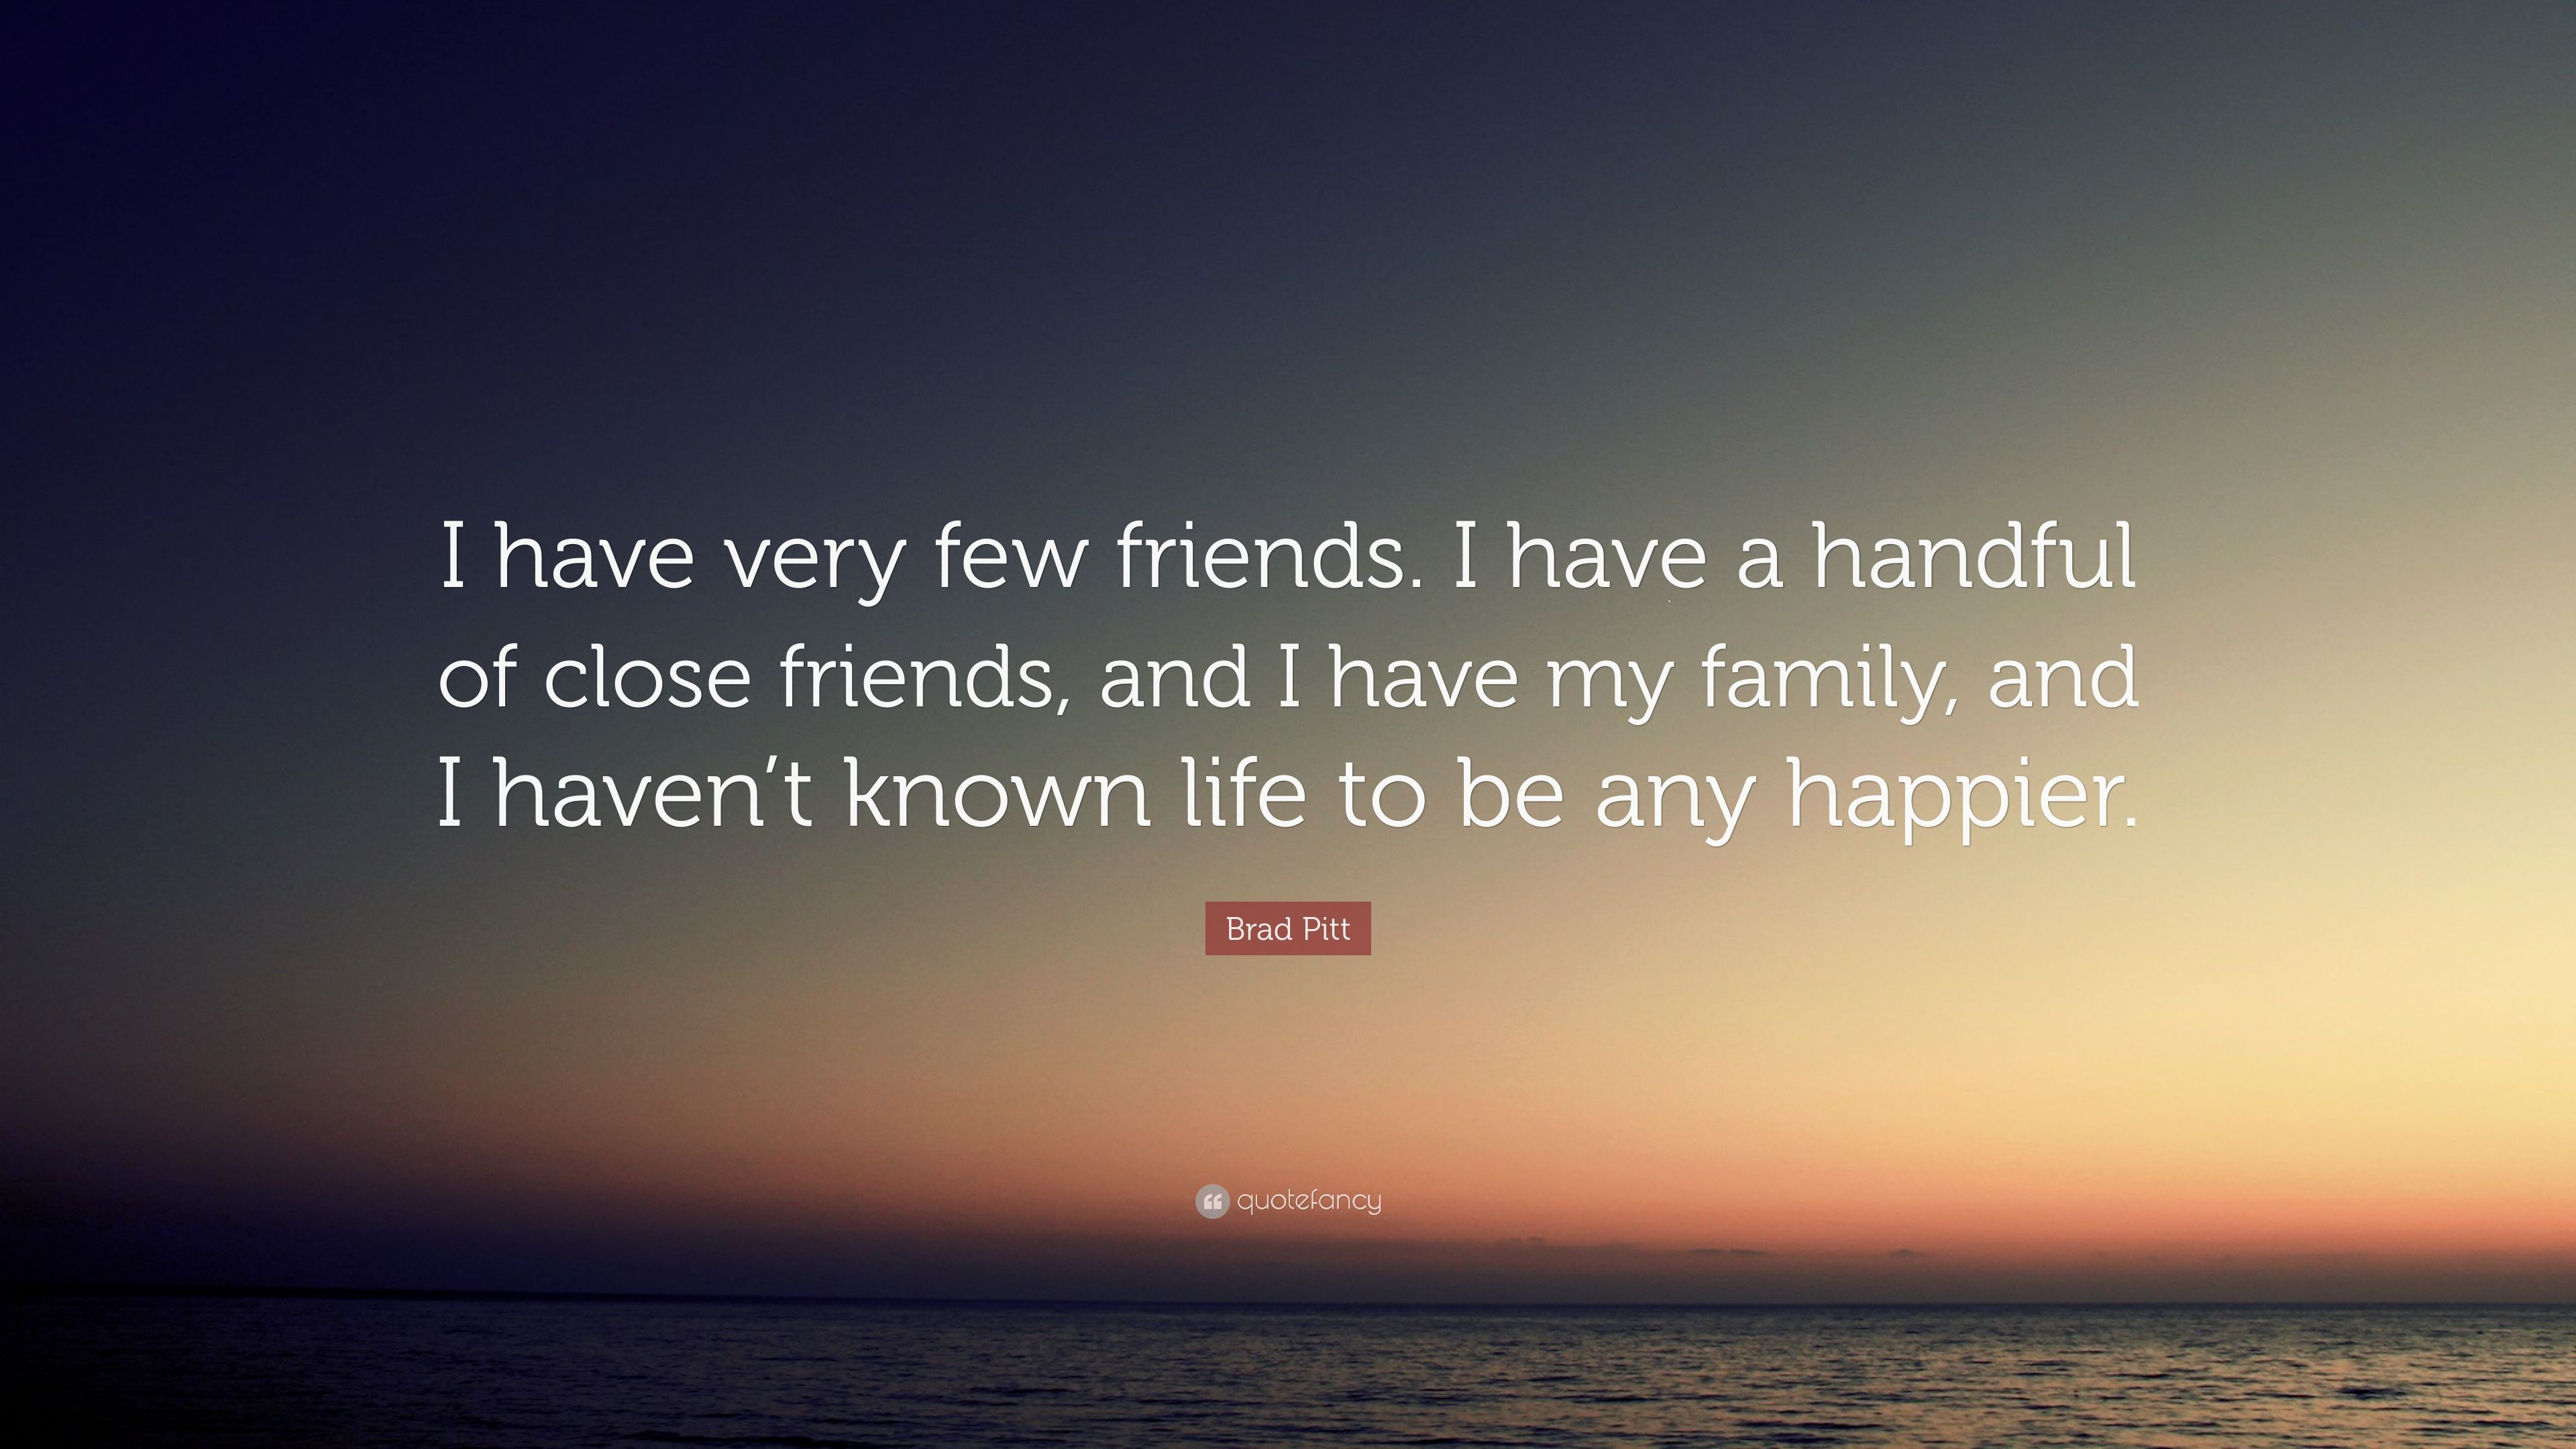 Awesome Brad Pitt Quote: U201cI Have Very Few Friends. I Have A Handful Of